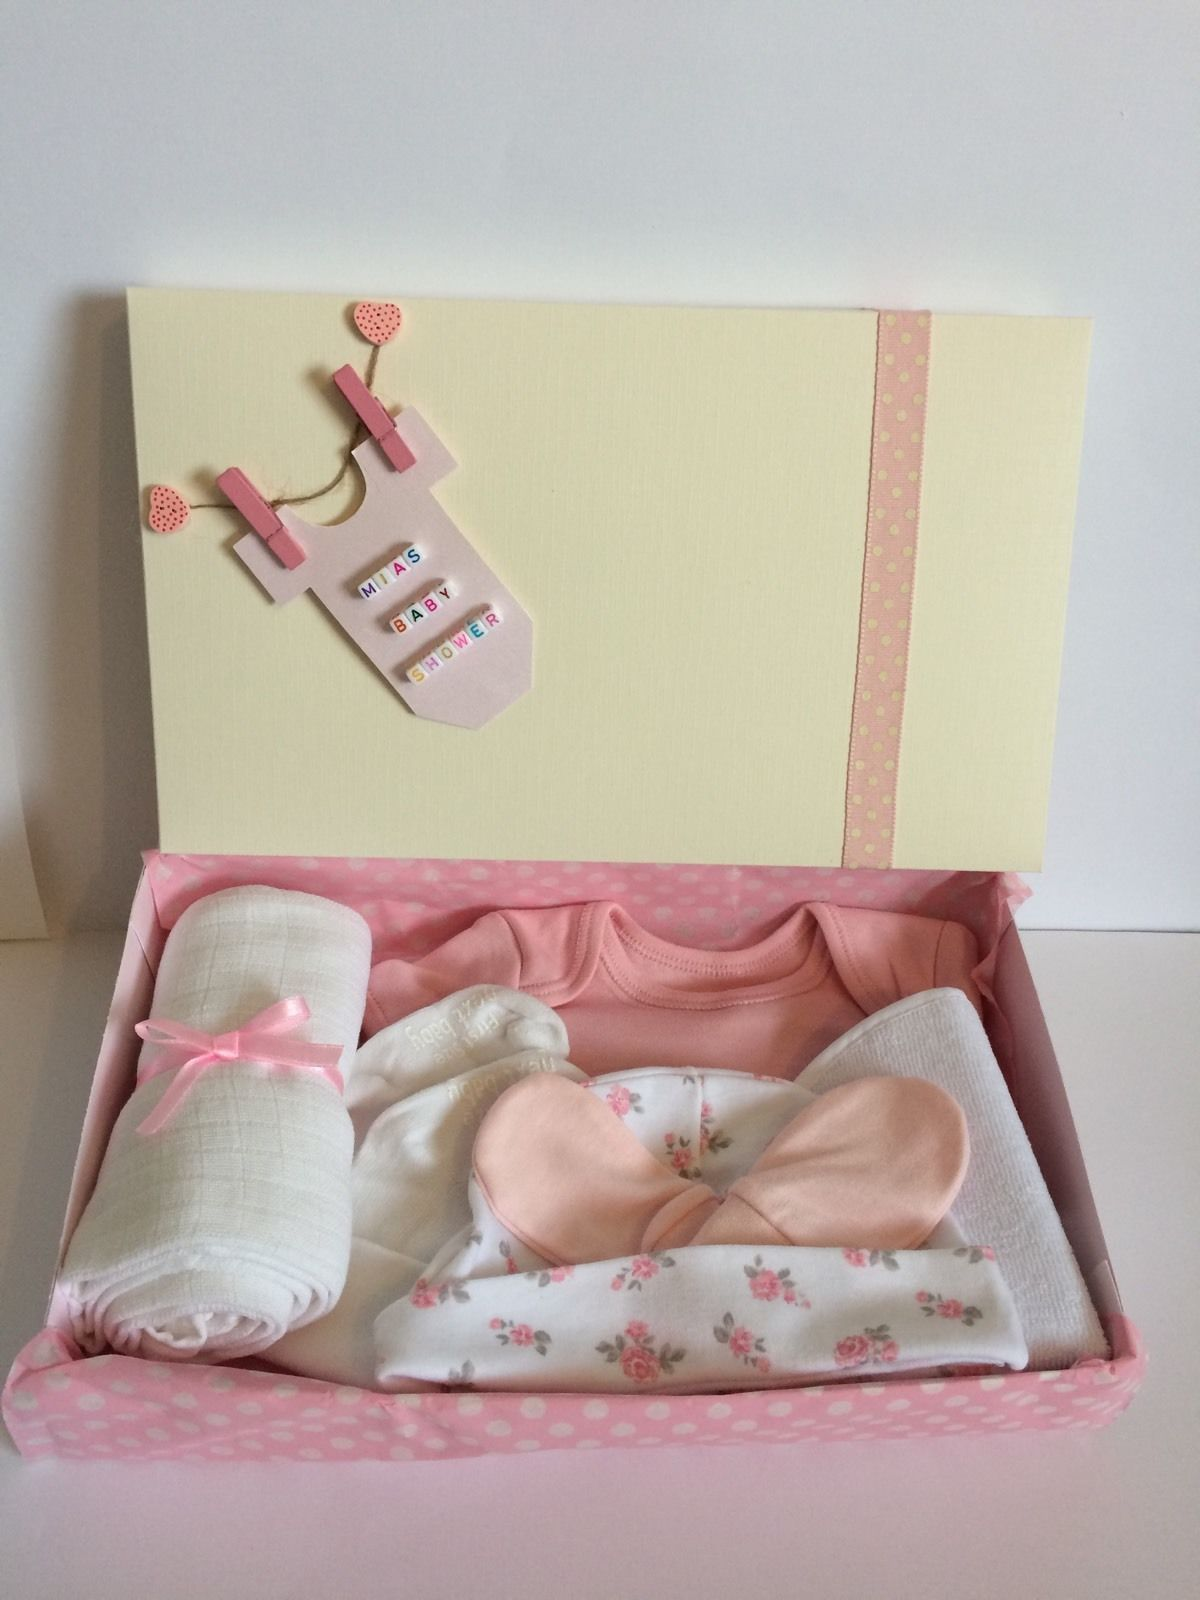 Personalised keepsake baby shower gift hamper present box girls 0 3 personalised keepsake baby shower gift hamper present box girls 0 3 3 6 months negle Image collections